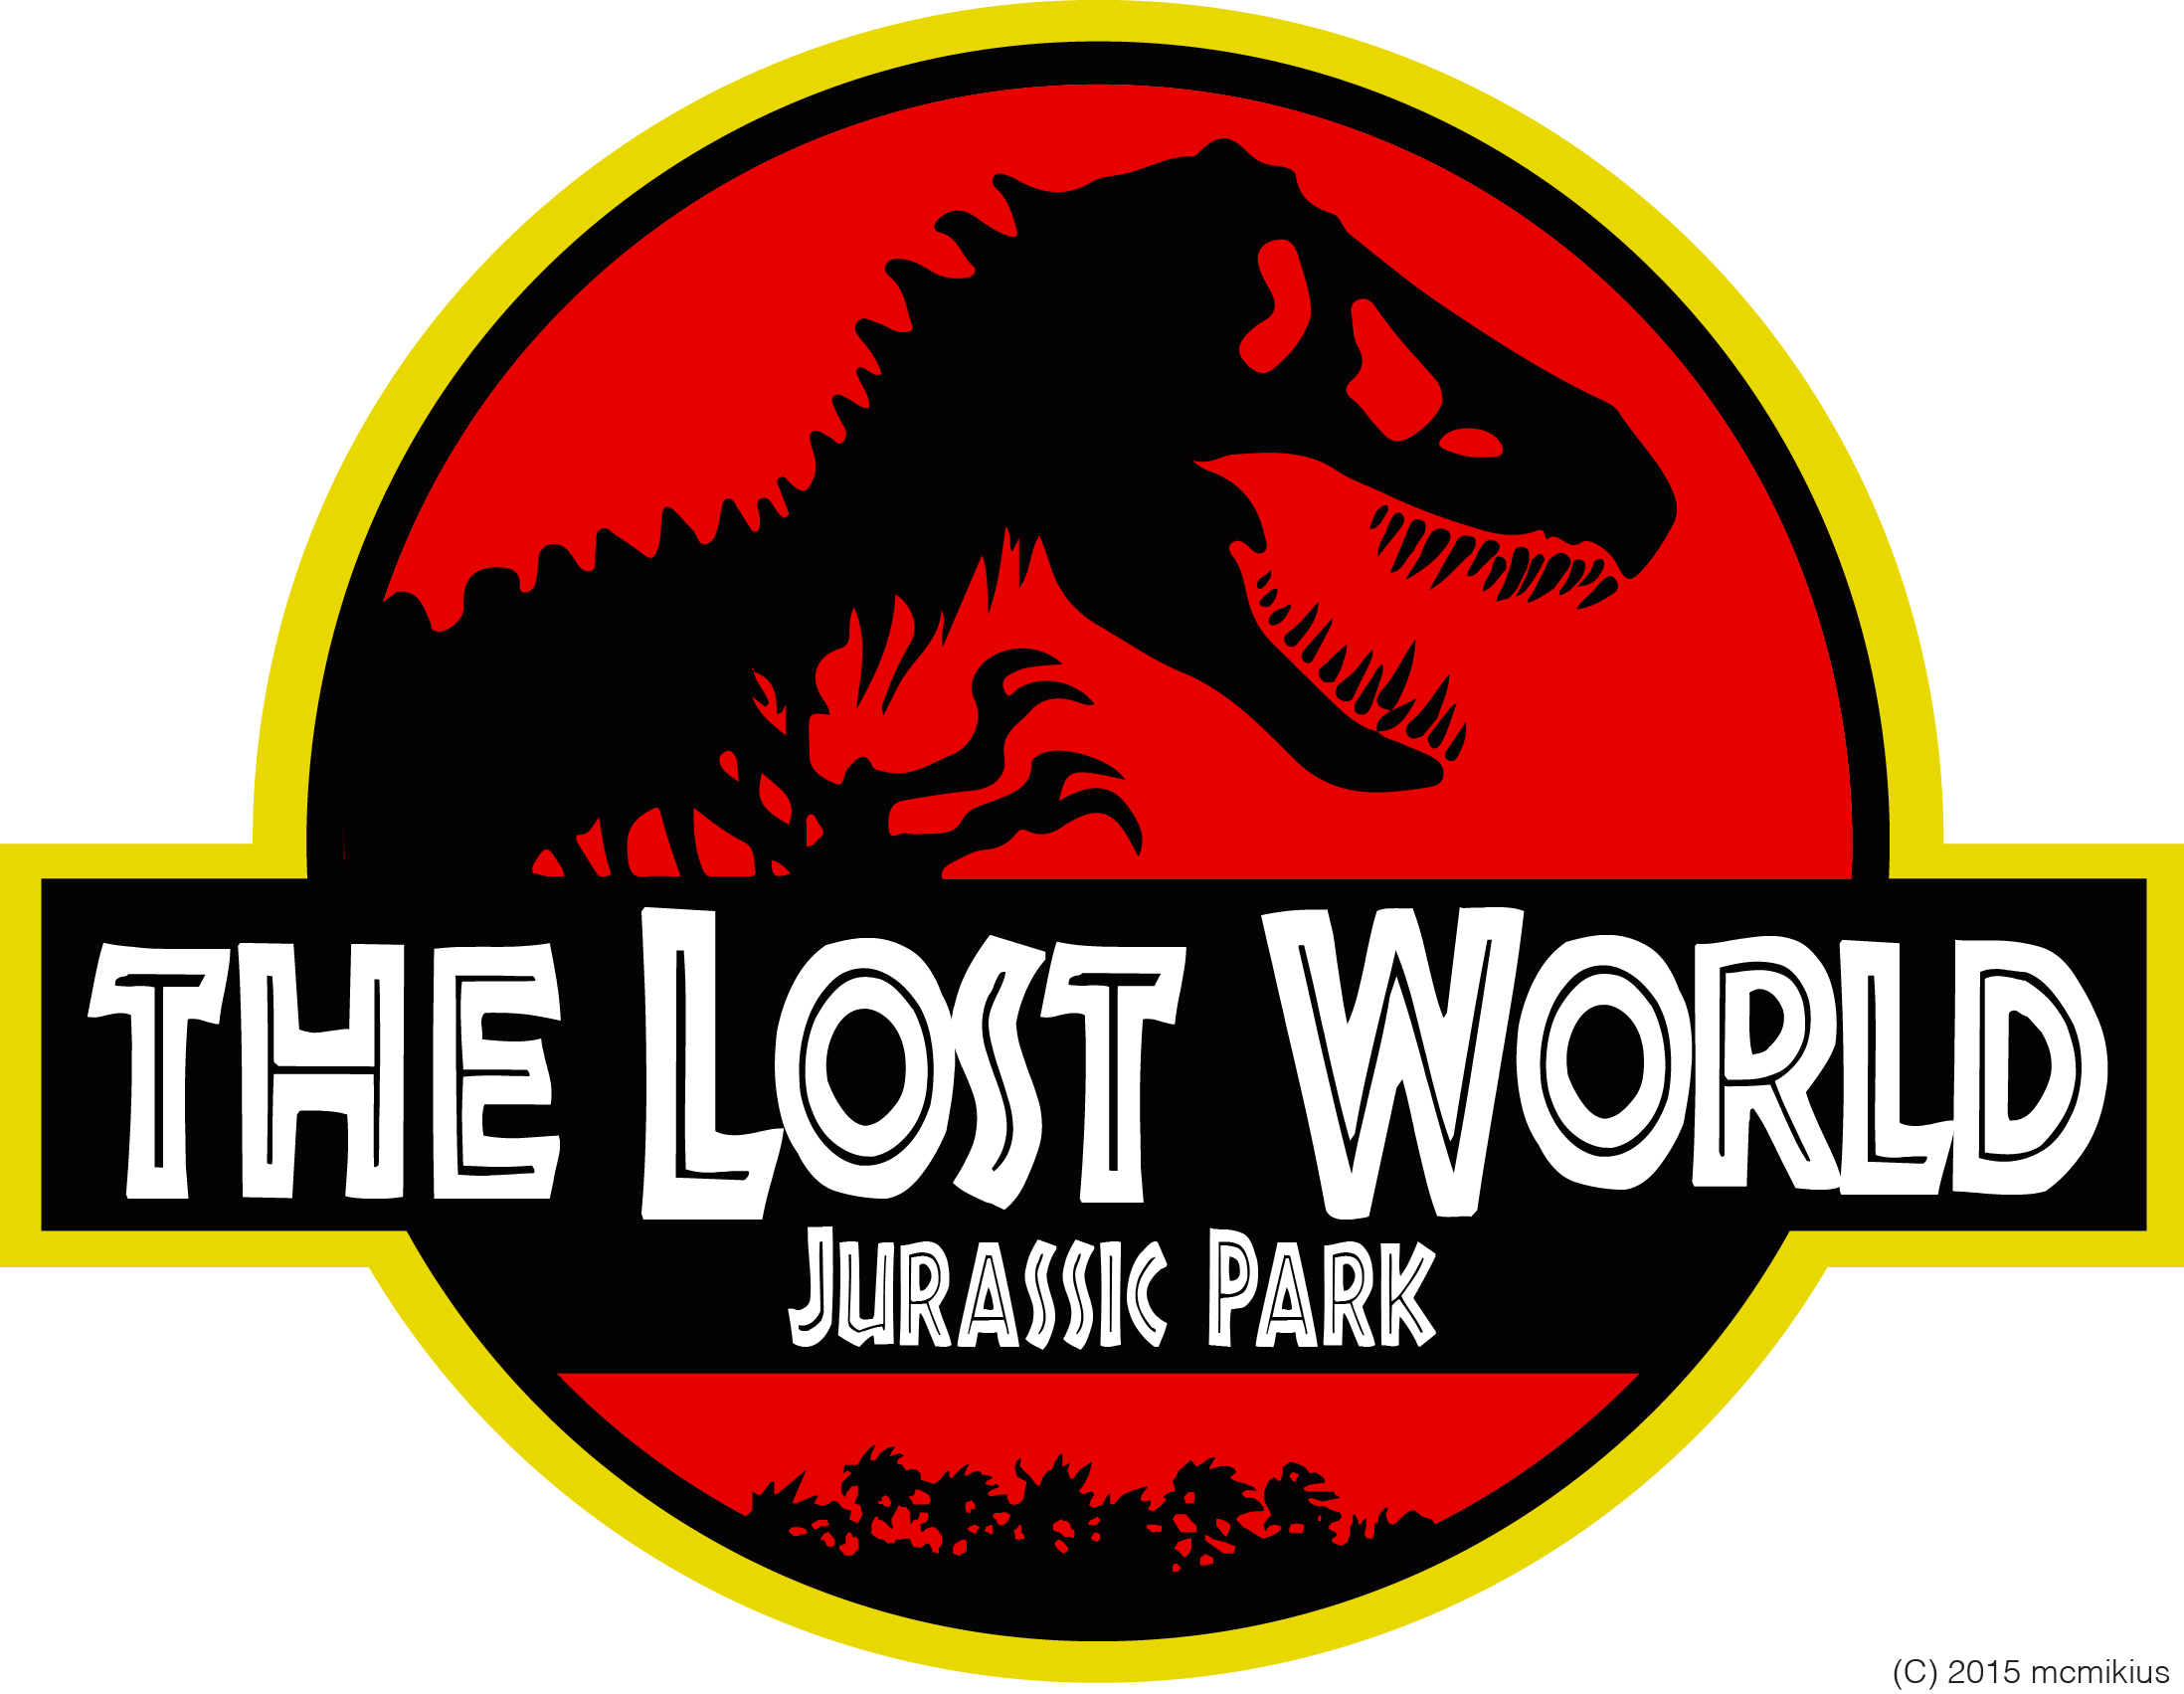 The Lost World Jurassic Park Logo by mcmikius on DeviantArt